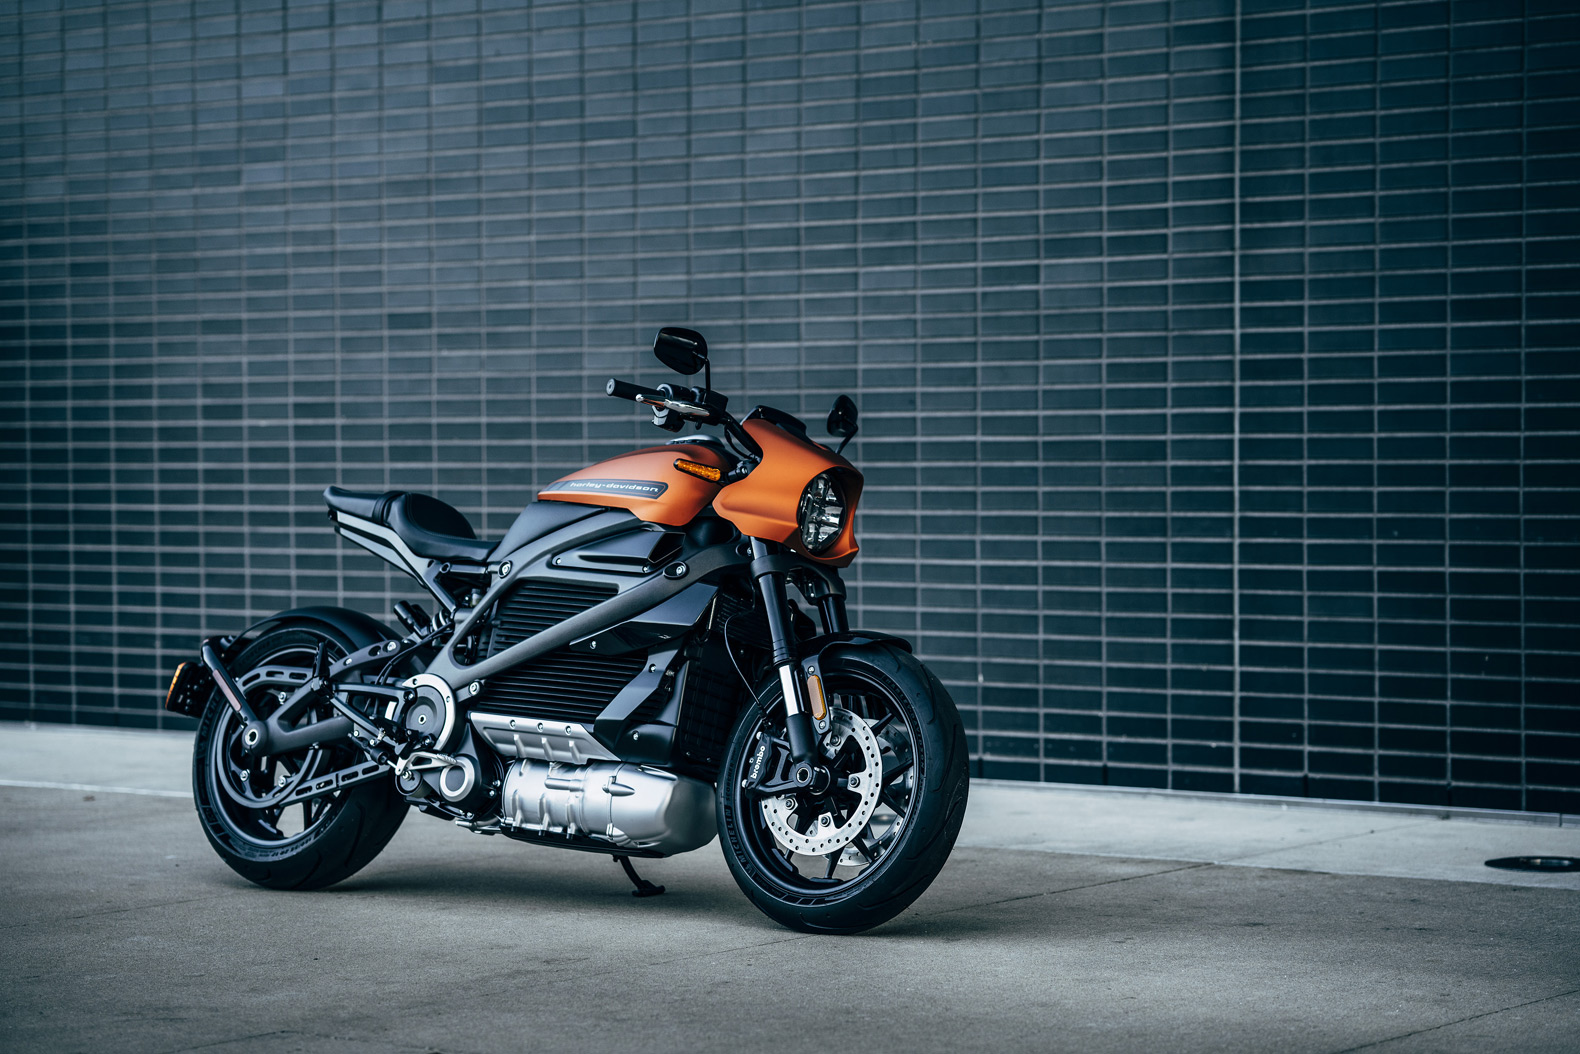 Harley-Davidson LiveWire electric motorcycle debuts at CES